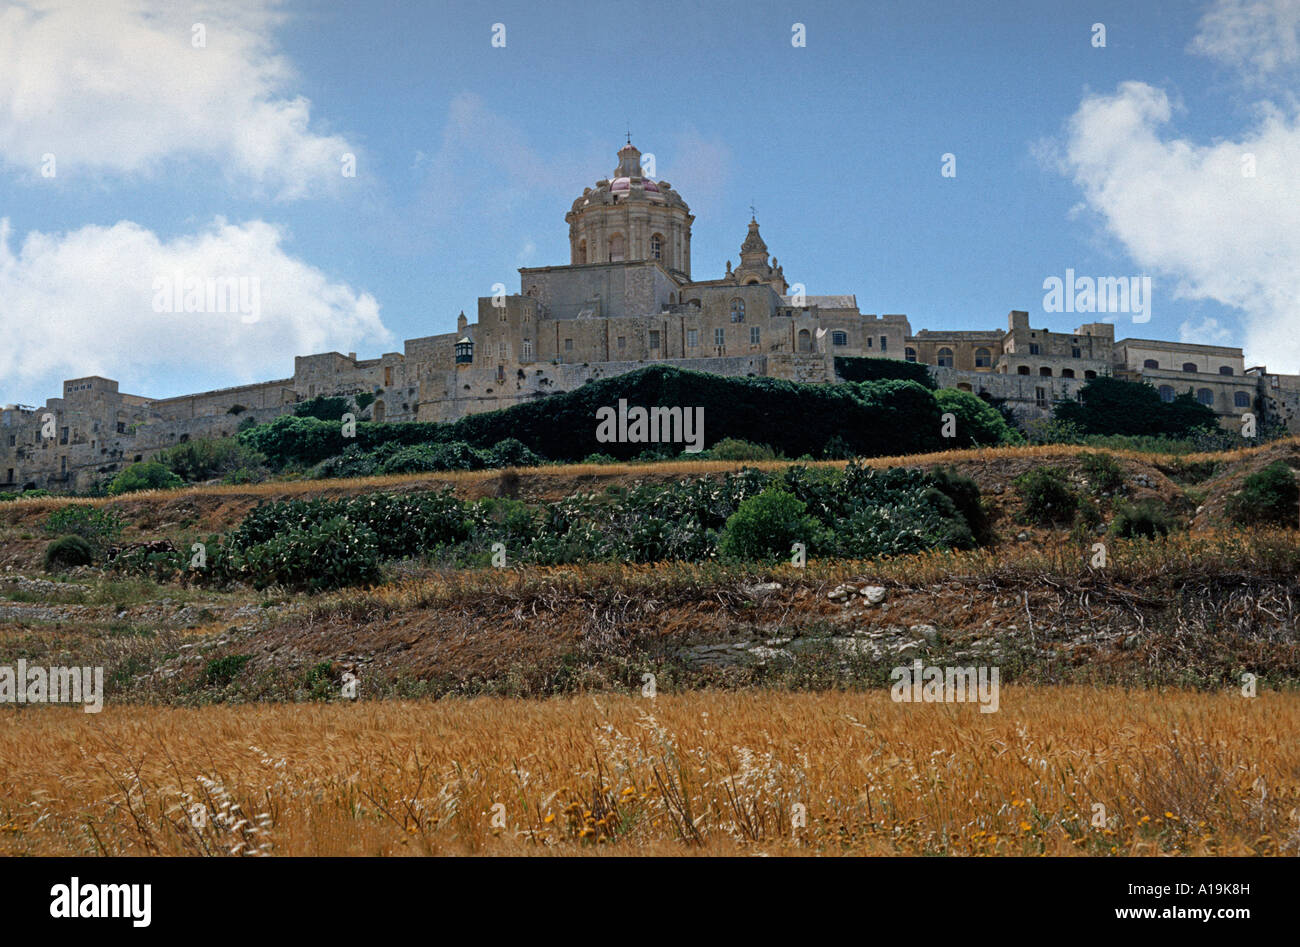 Historic Cathedral of Mdina viewed across fields MALTA Ancient walled european city devastated by an earthquake - Stock Image